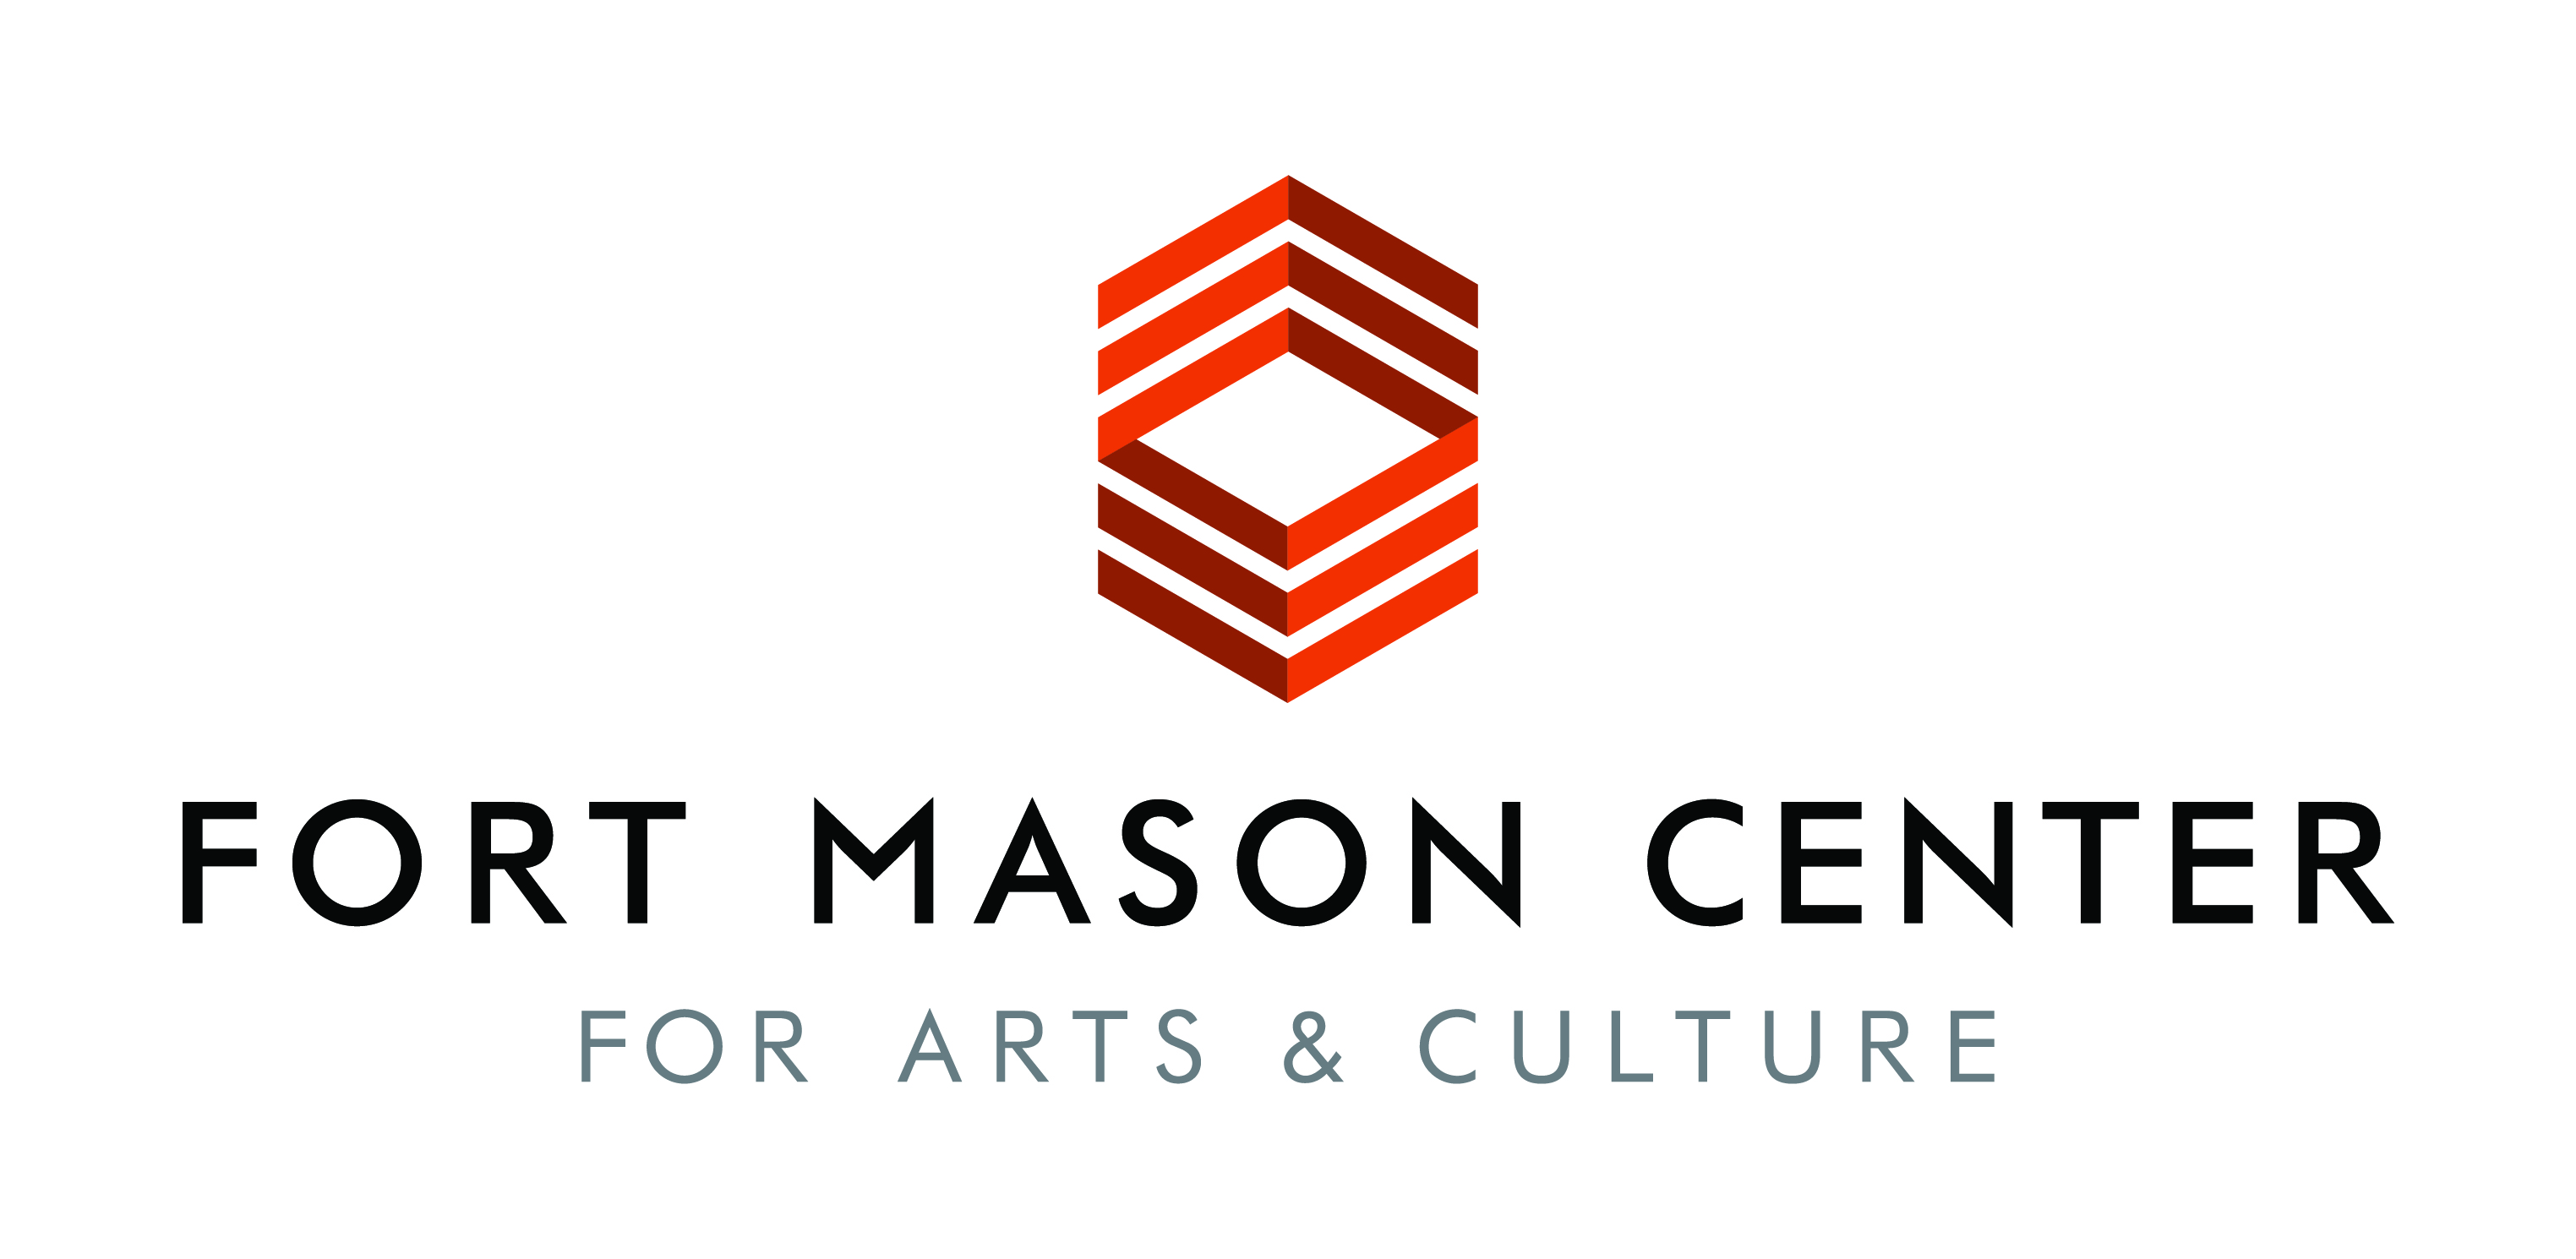 Fort Mason Center For Arts & Culture 2